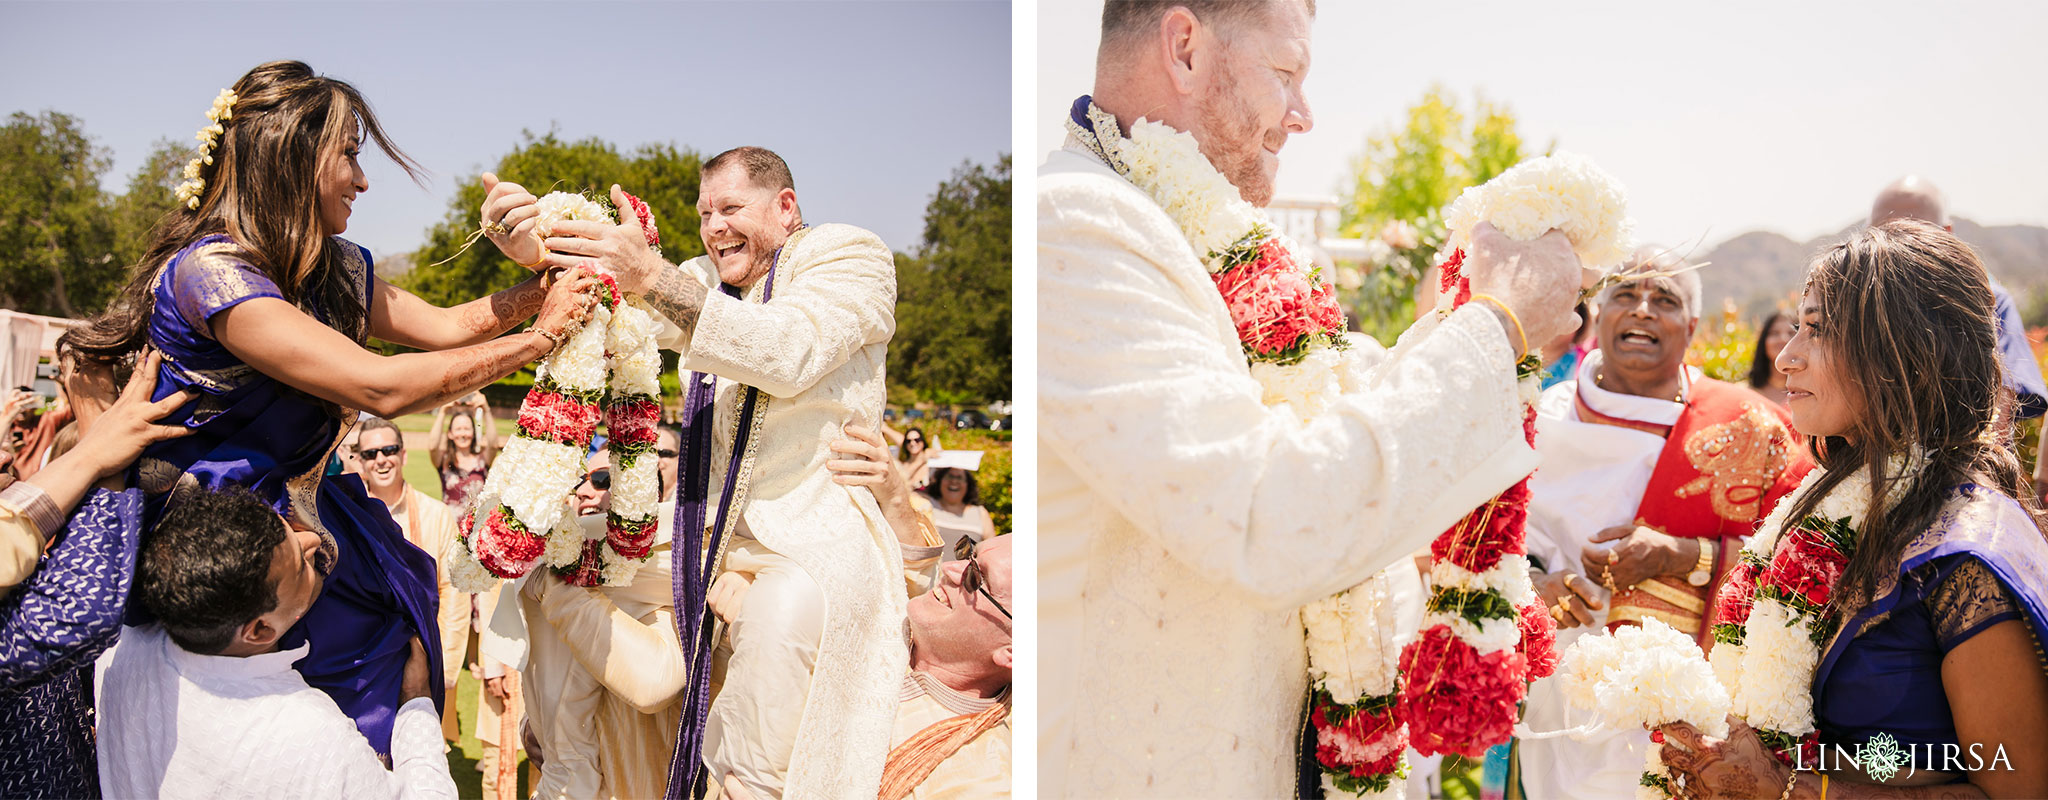 027 sherwood country club indian wedding ceremony photography